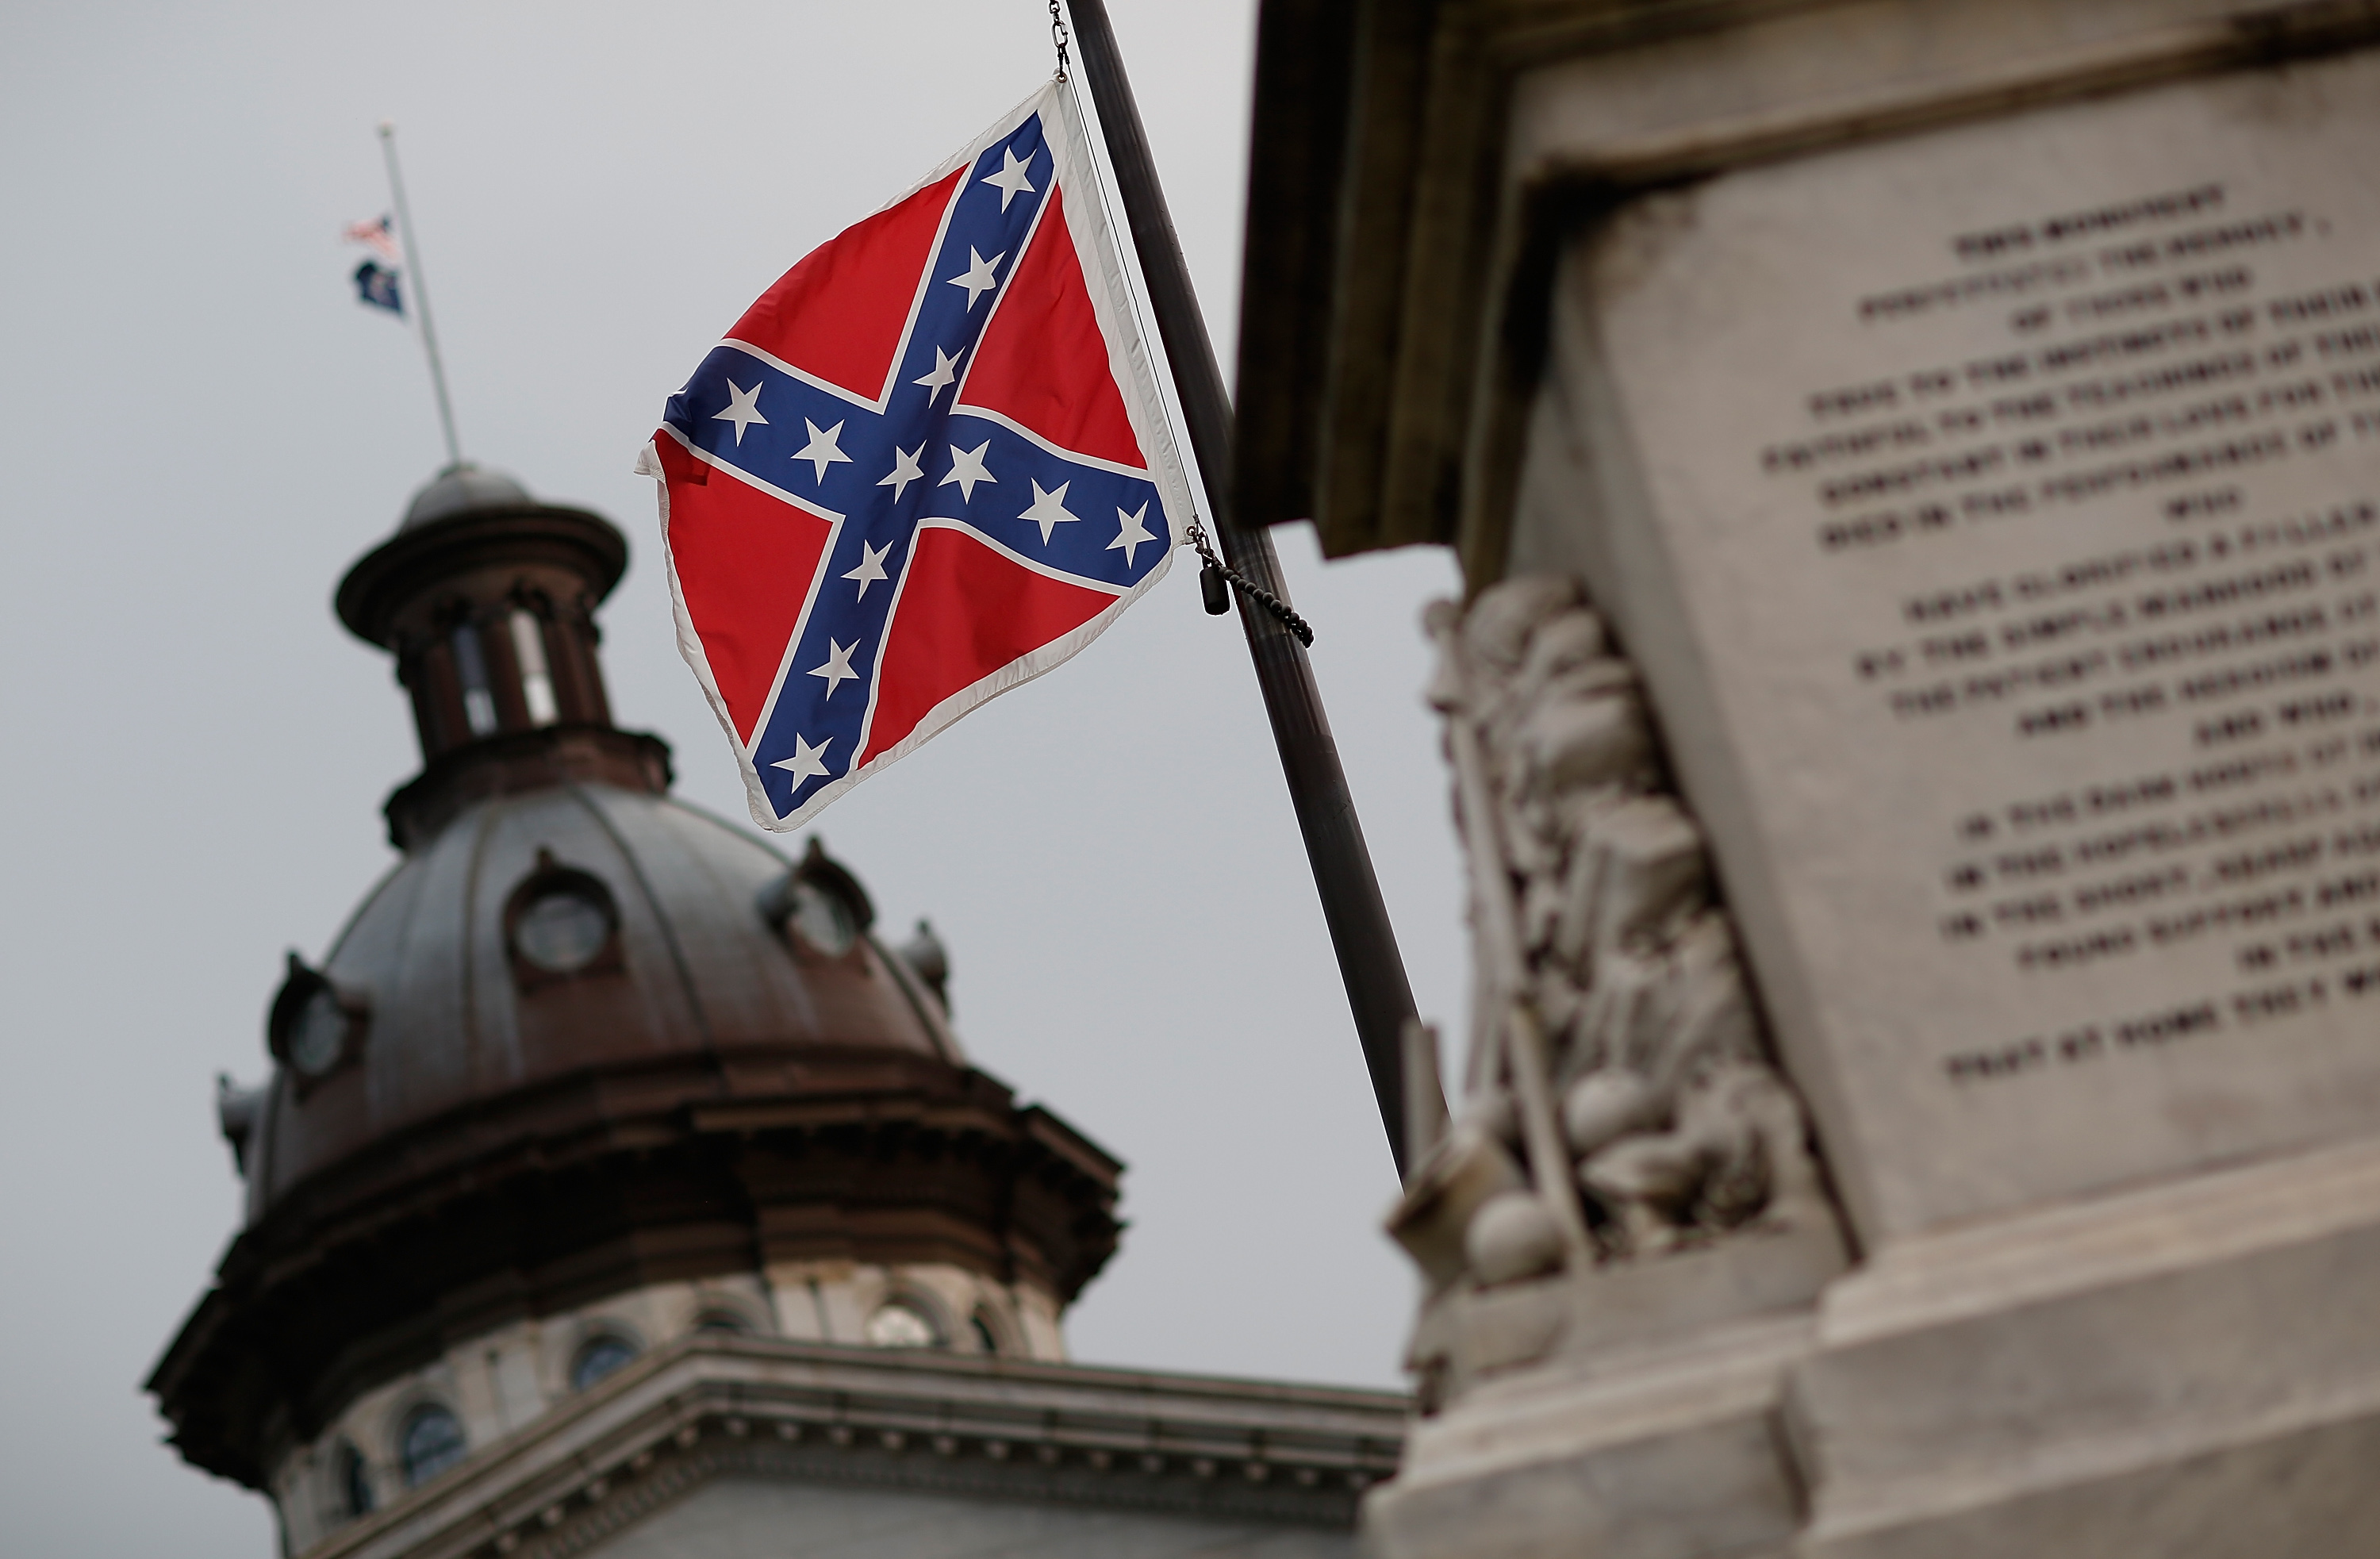 Robert e lee and jefferson davis wanted the confederate flag to win mcnameegetty images newsgetty images biocorpaavc